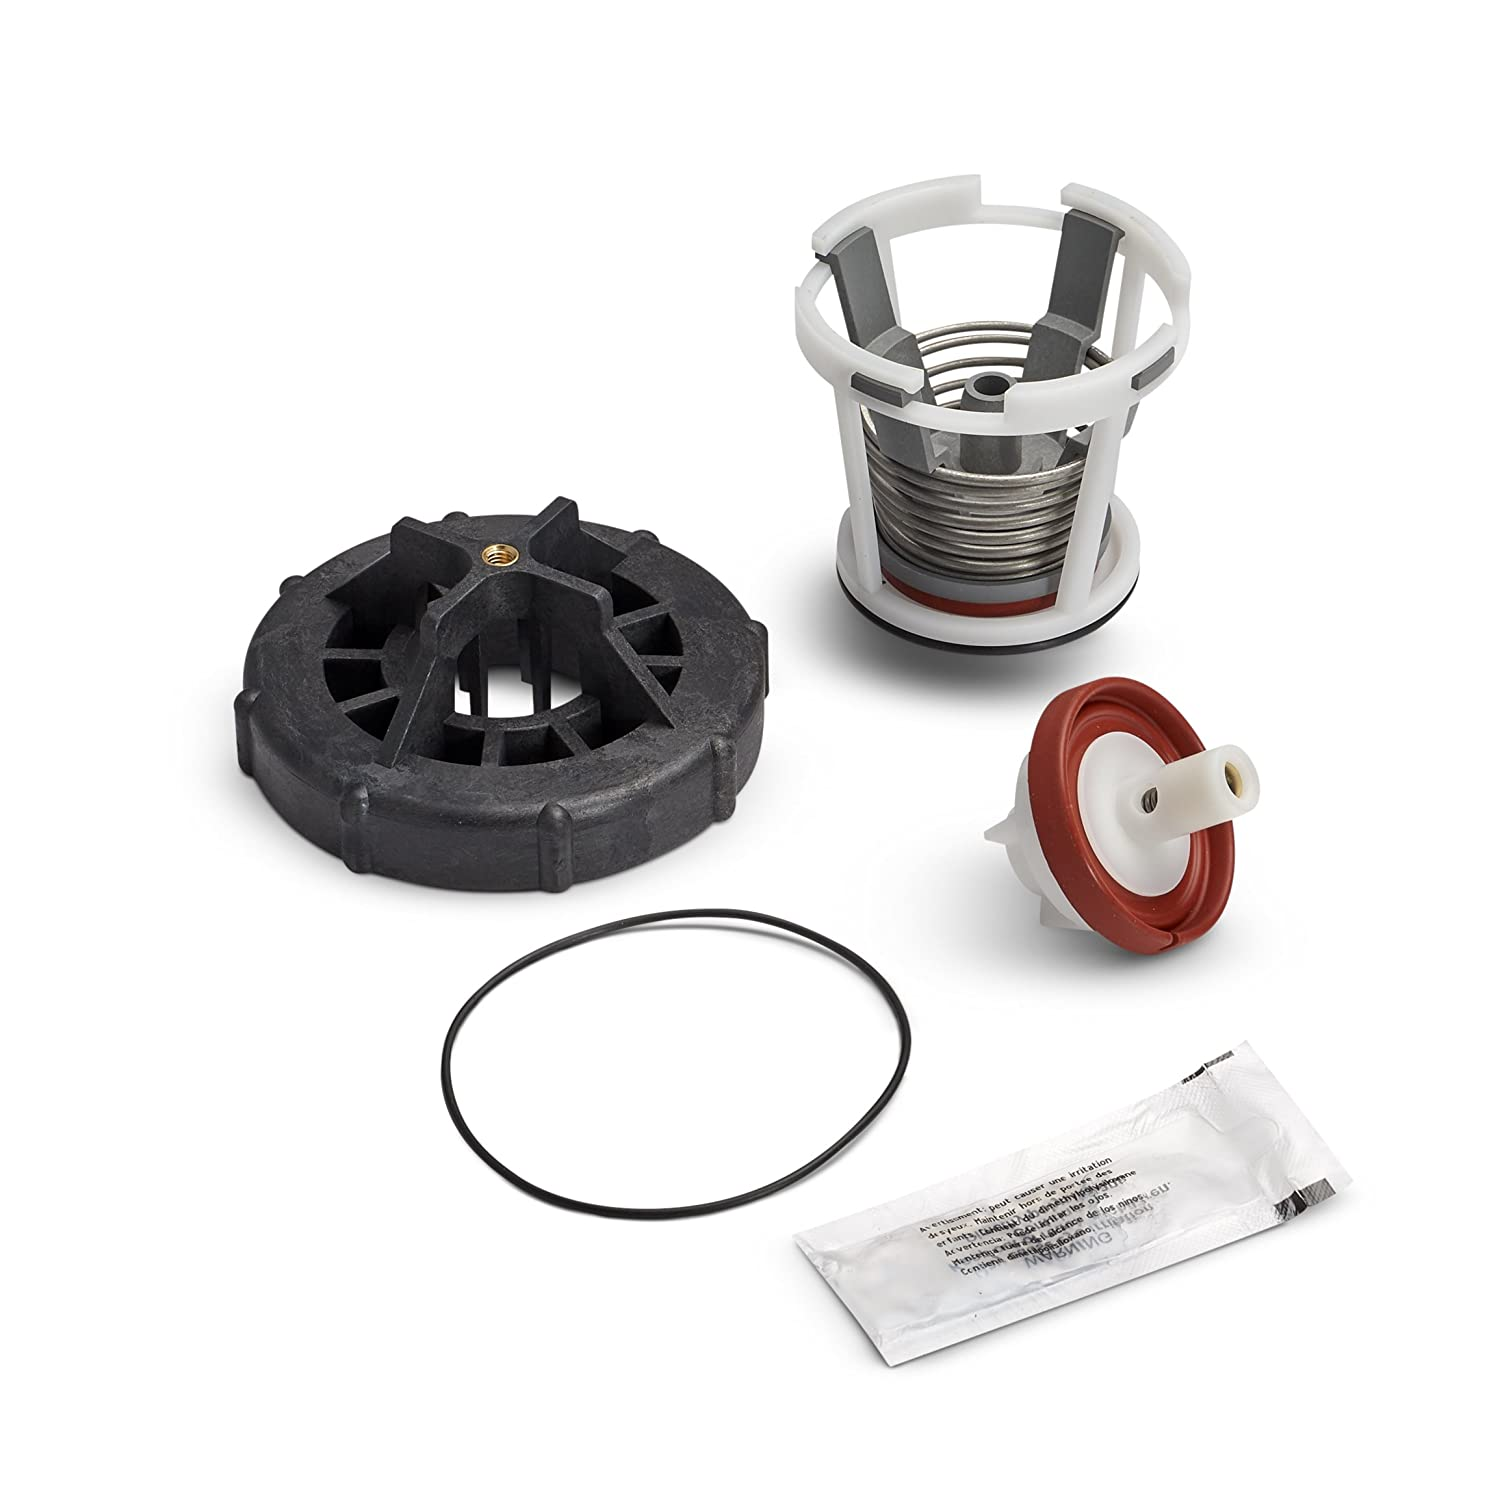 "Zurn RK1-420 Wilkins Complete Repair Kit for 1"" Model 420/420XL and for 1"" Pressure Vacuum Breaker (PVB)"